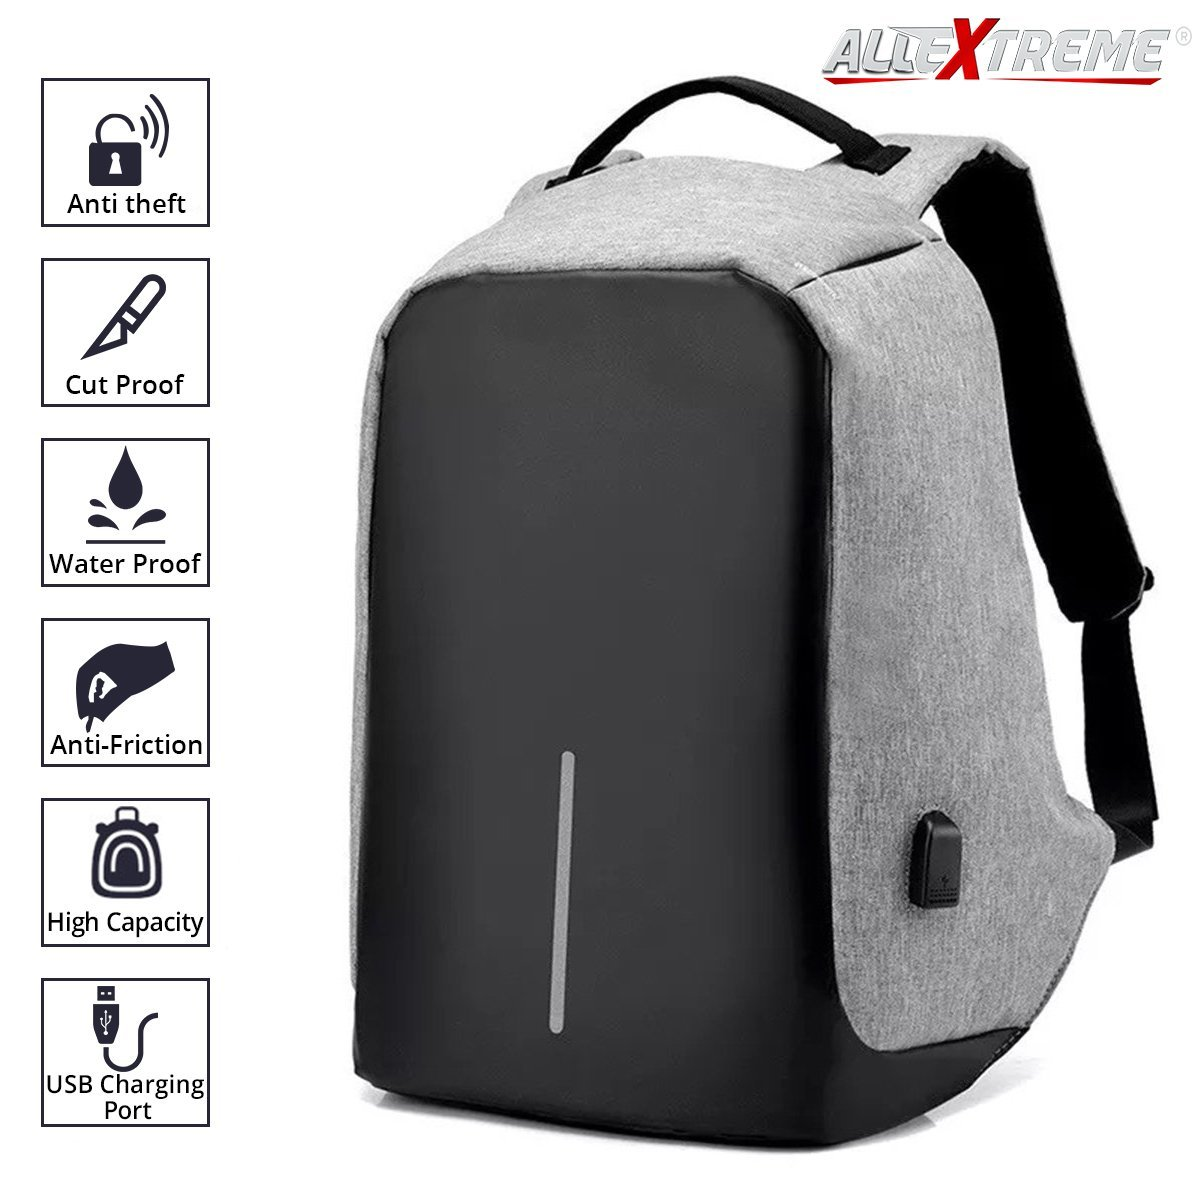 487bb1b52599 AllExtreme Anti theft Backpack Business Laptop Bag with USB Charging P —  Hylacs